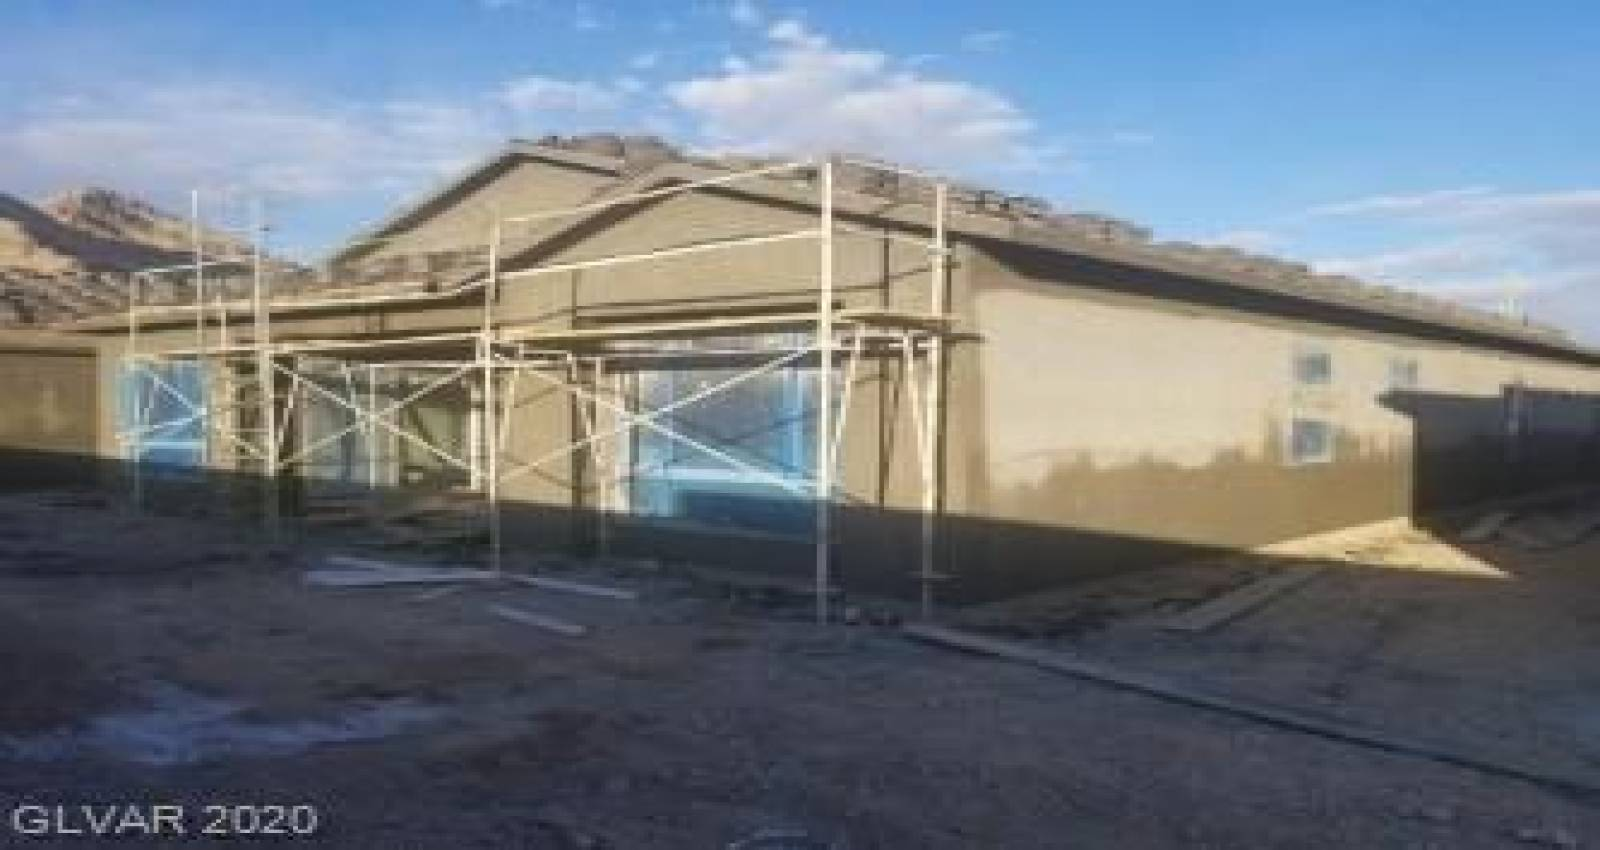 3019 FALL SOLSTICE Court, Las Vegas, Nevada 89138, 4 Bedrooms Bedrooms, 9 Rooms Rooms,3 BathroomsBathrooms,Residential,For Sale,FALL SOLSTICE,2165030